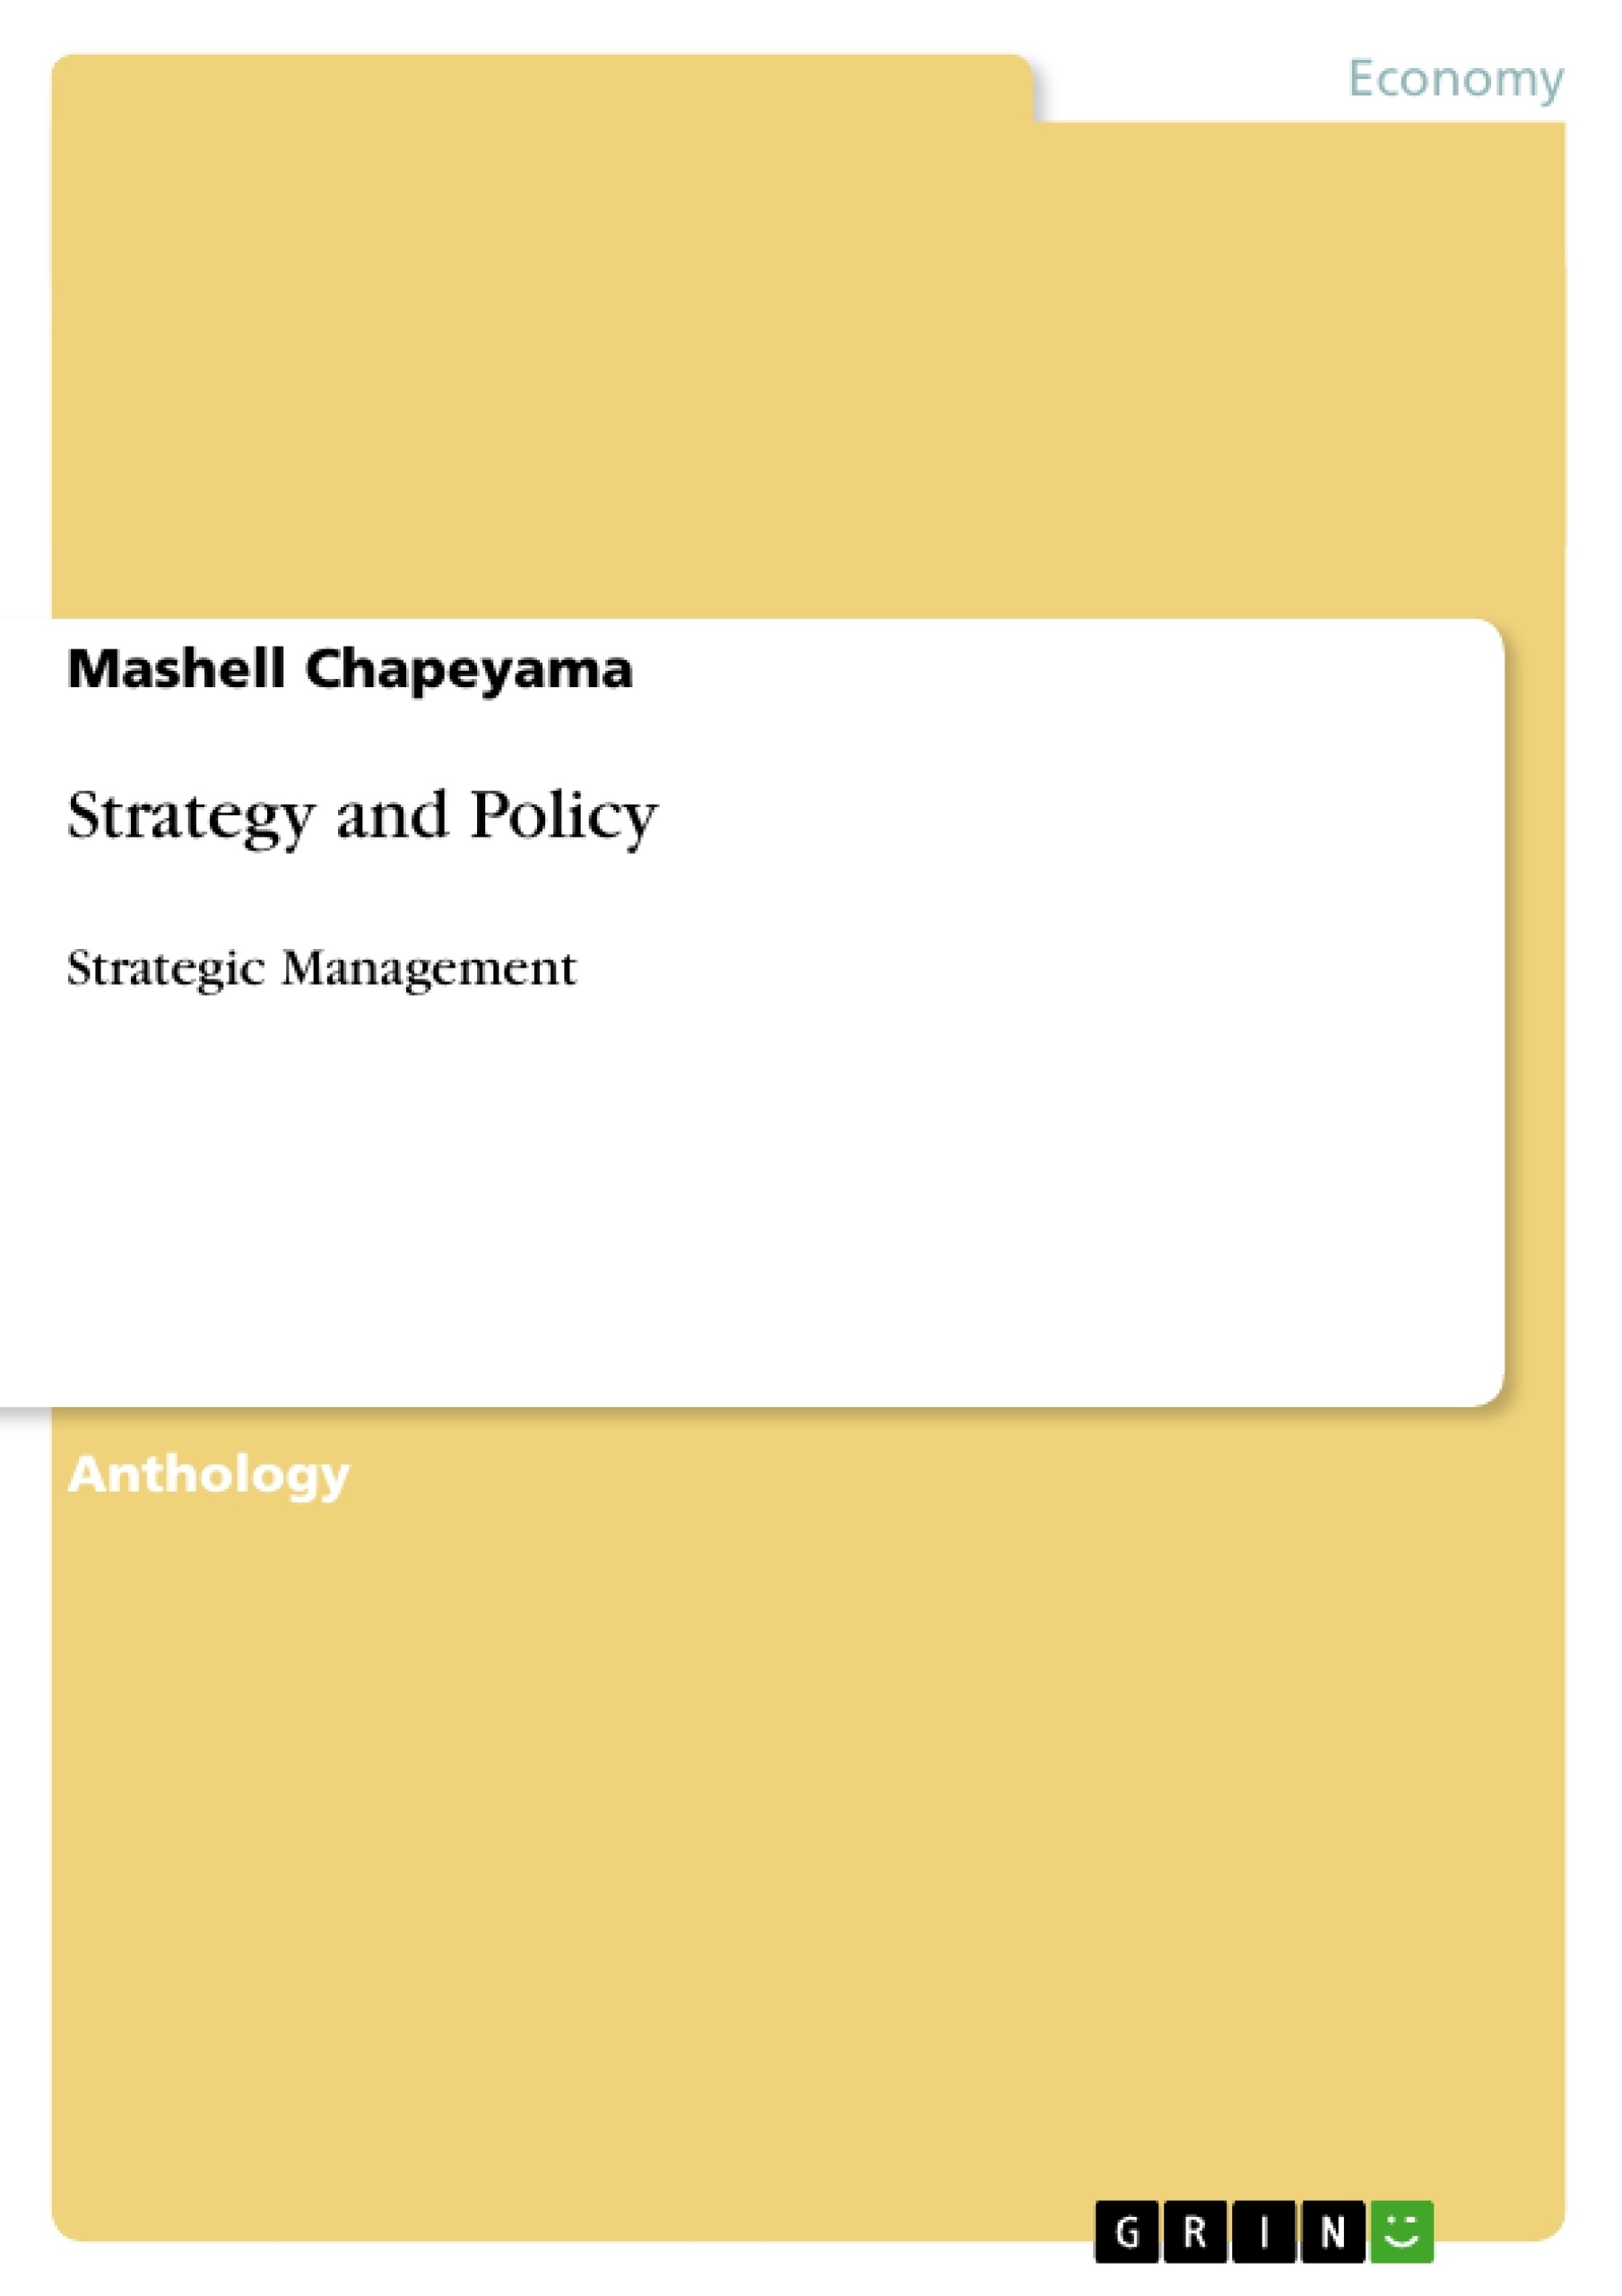 Title: Strategy and Policy